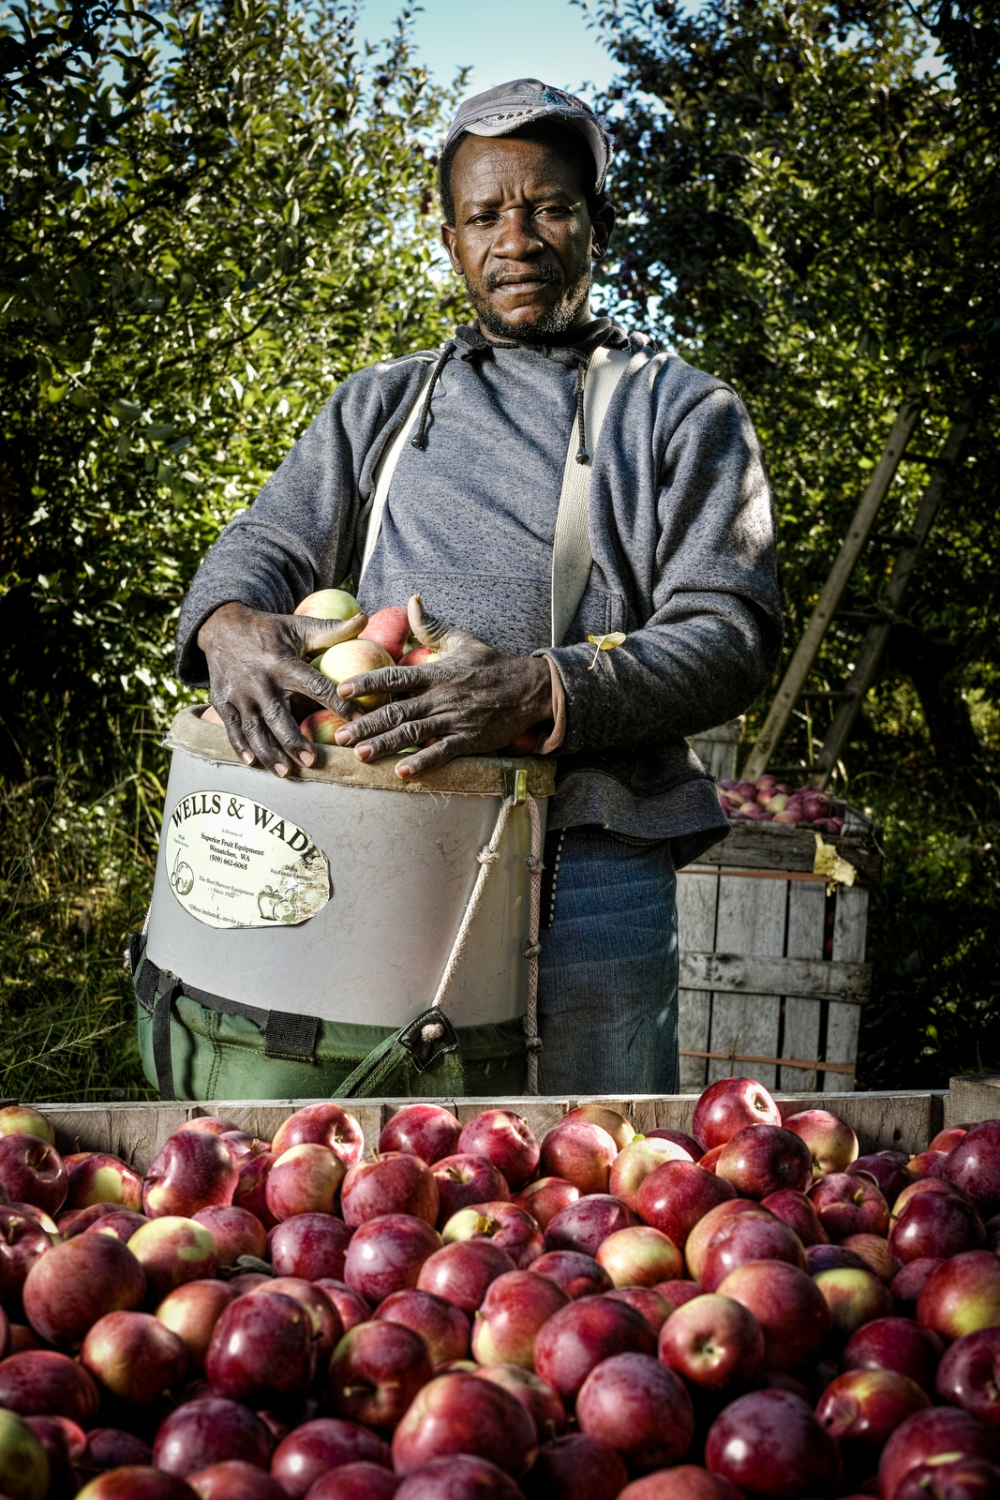 Willoughby Thomas of St. Ann, Jamaica is an apple picker at Sunrise Orchards, Cornwall, Vermont.